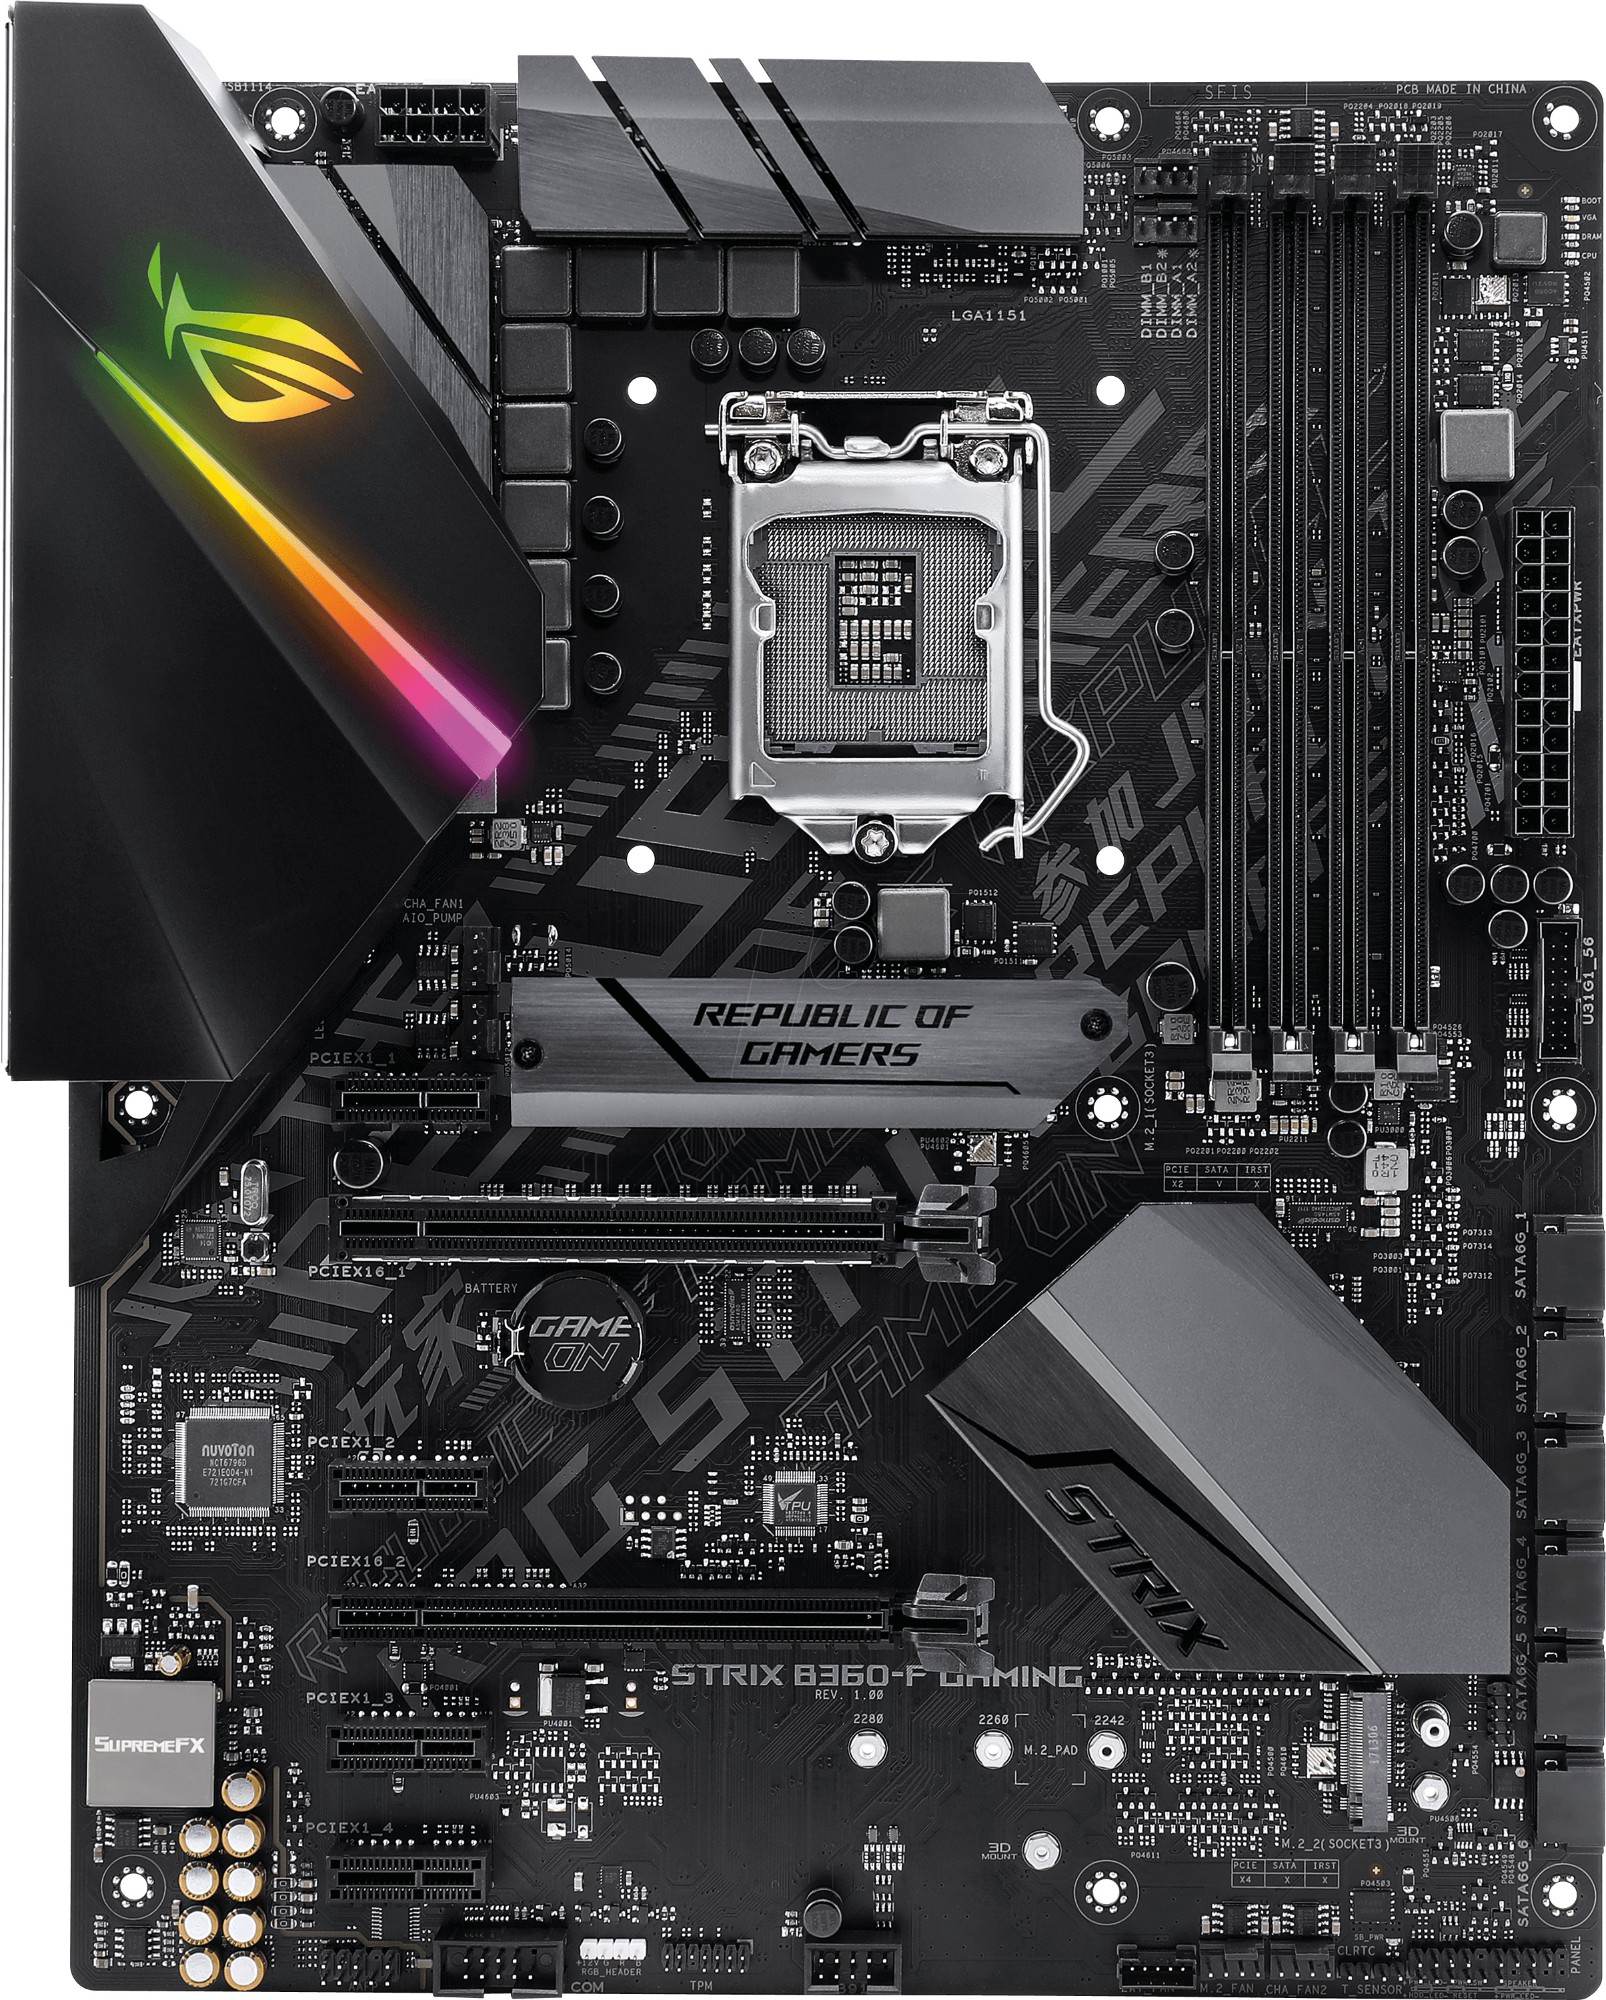 ASUS ROG STRIX B360-F GAMING motherboard LGA 1151 (Socket H4) ATX Intel® B360